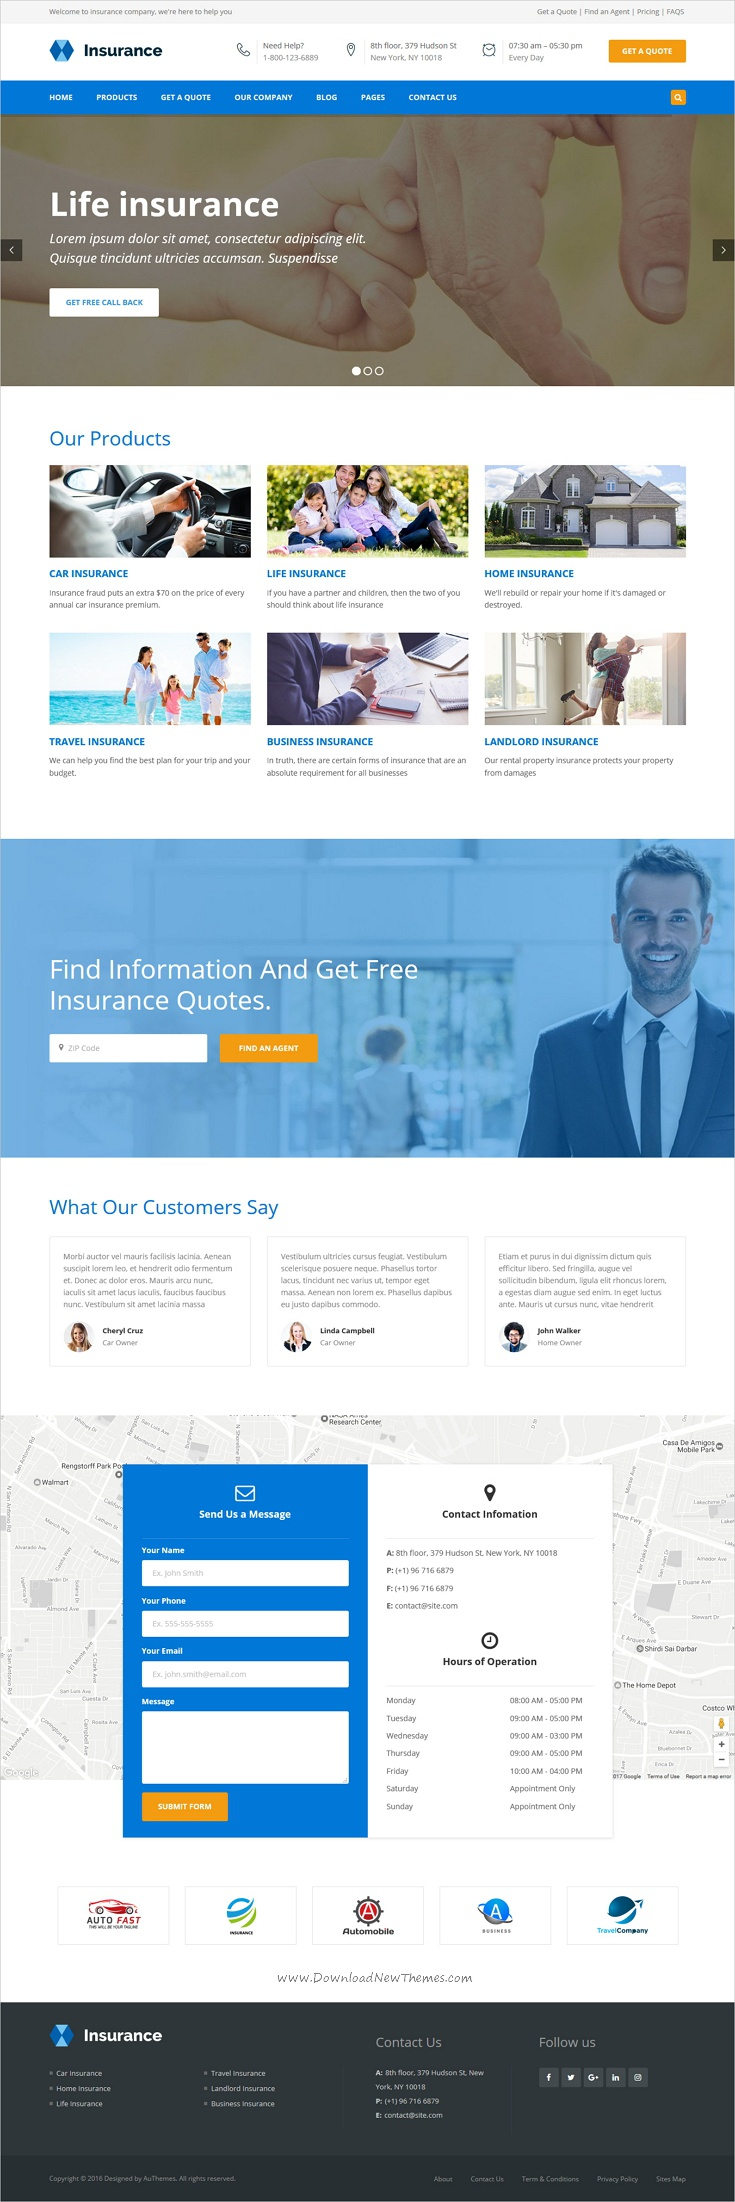 Bisune - Insurance Agency & Business HTML5 Template | Web ...